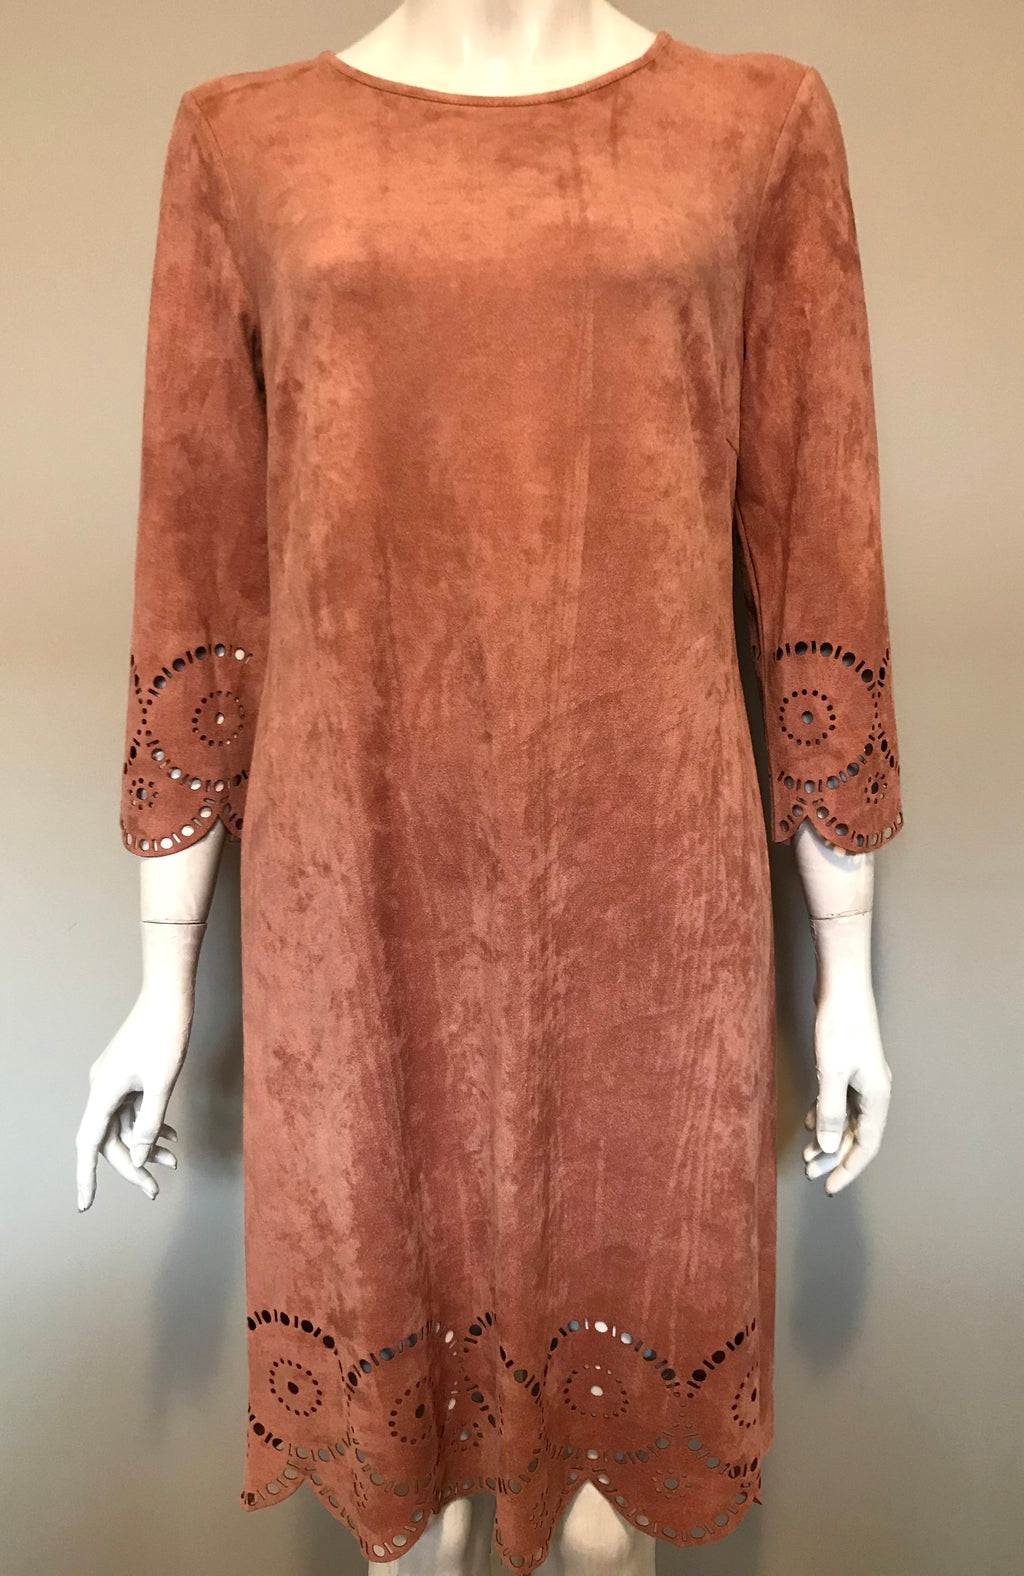 Kate & Mallory Blush Faux Suede Dress Size M